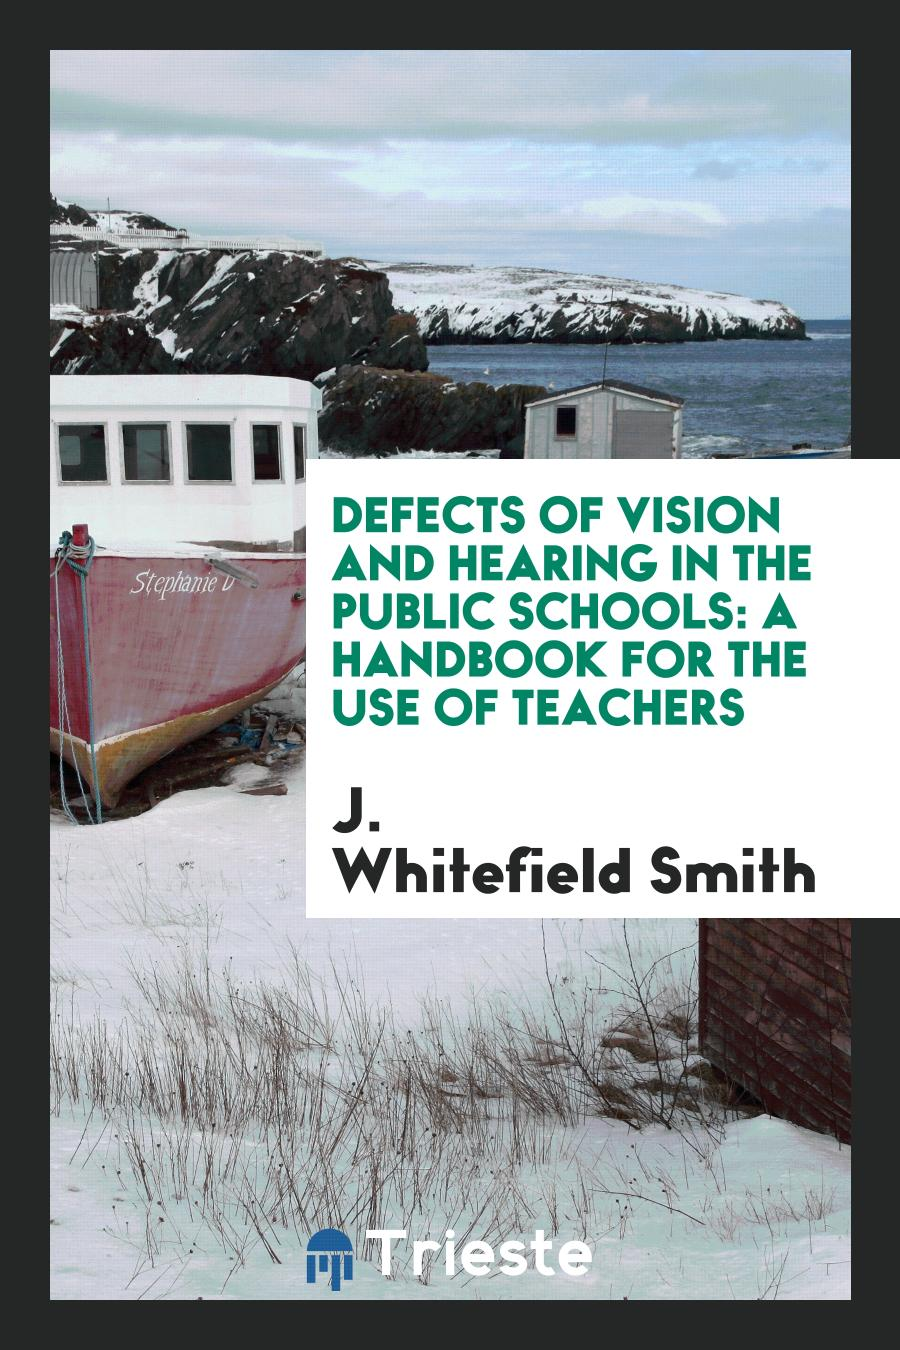 Defects of Vision and Hearing in the Public Schools: A Handbook for the Use of Teachers